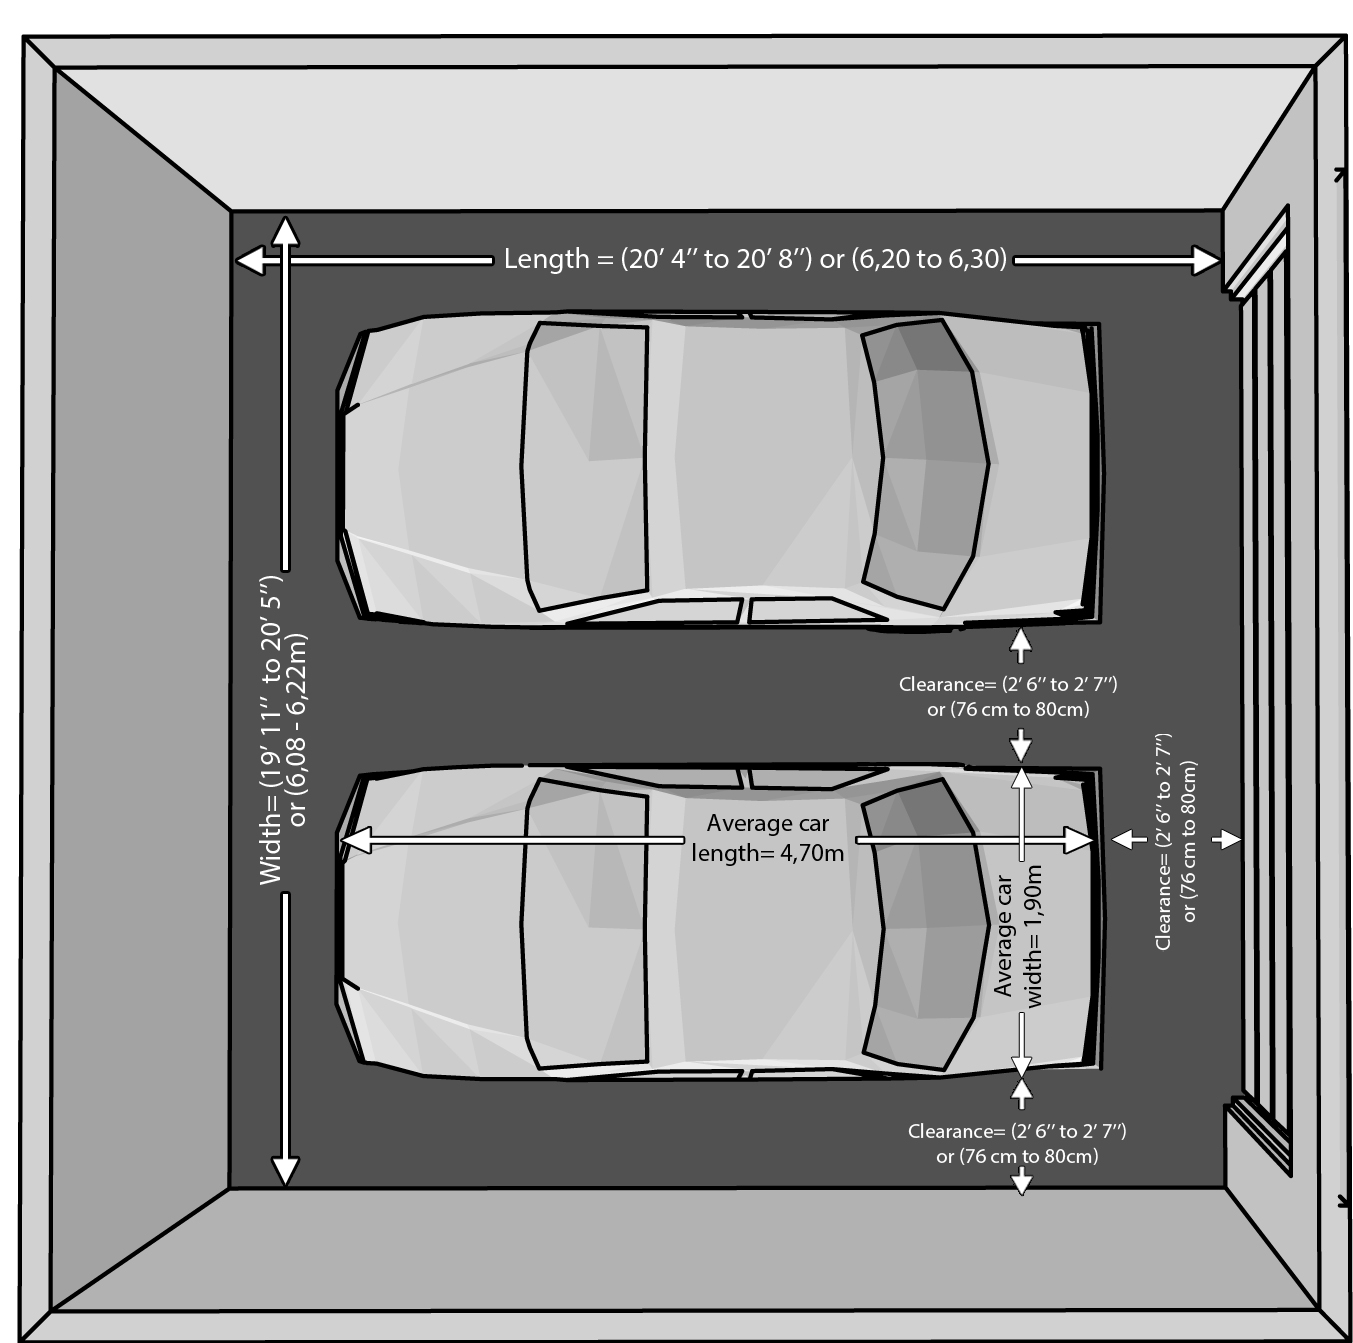 The dimensions of an one car and a two car garage for Dimensions of 2 car garage